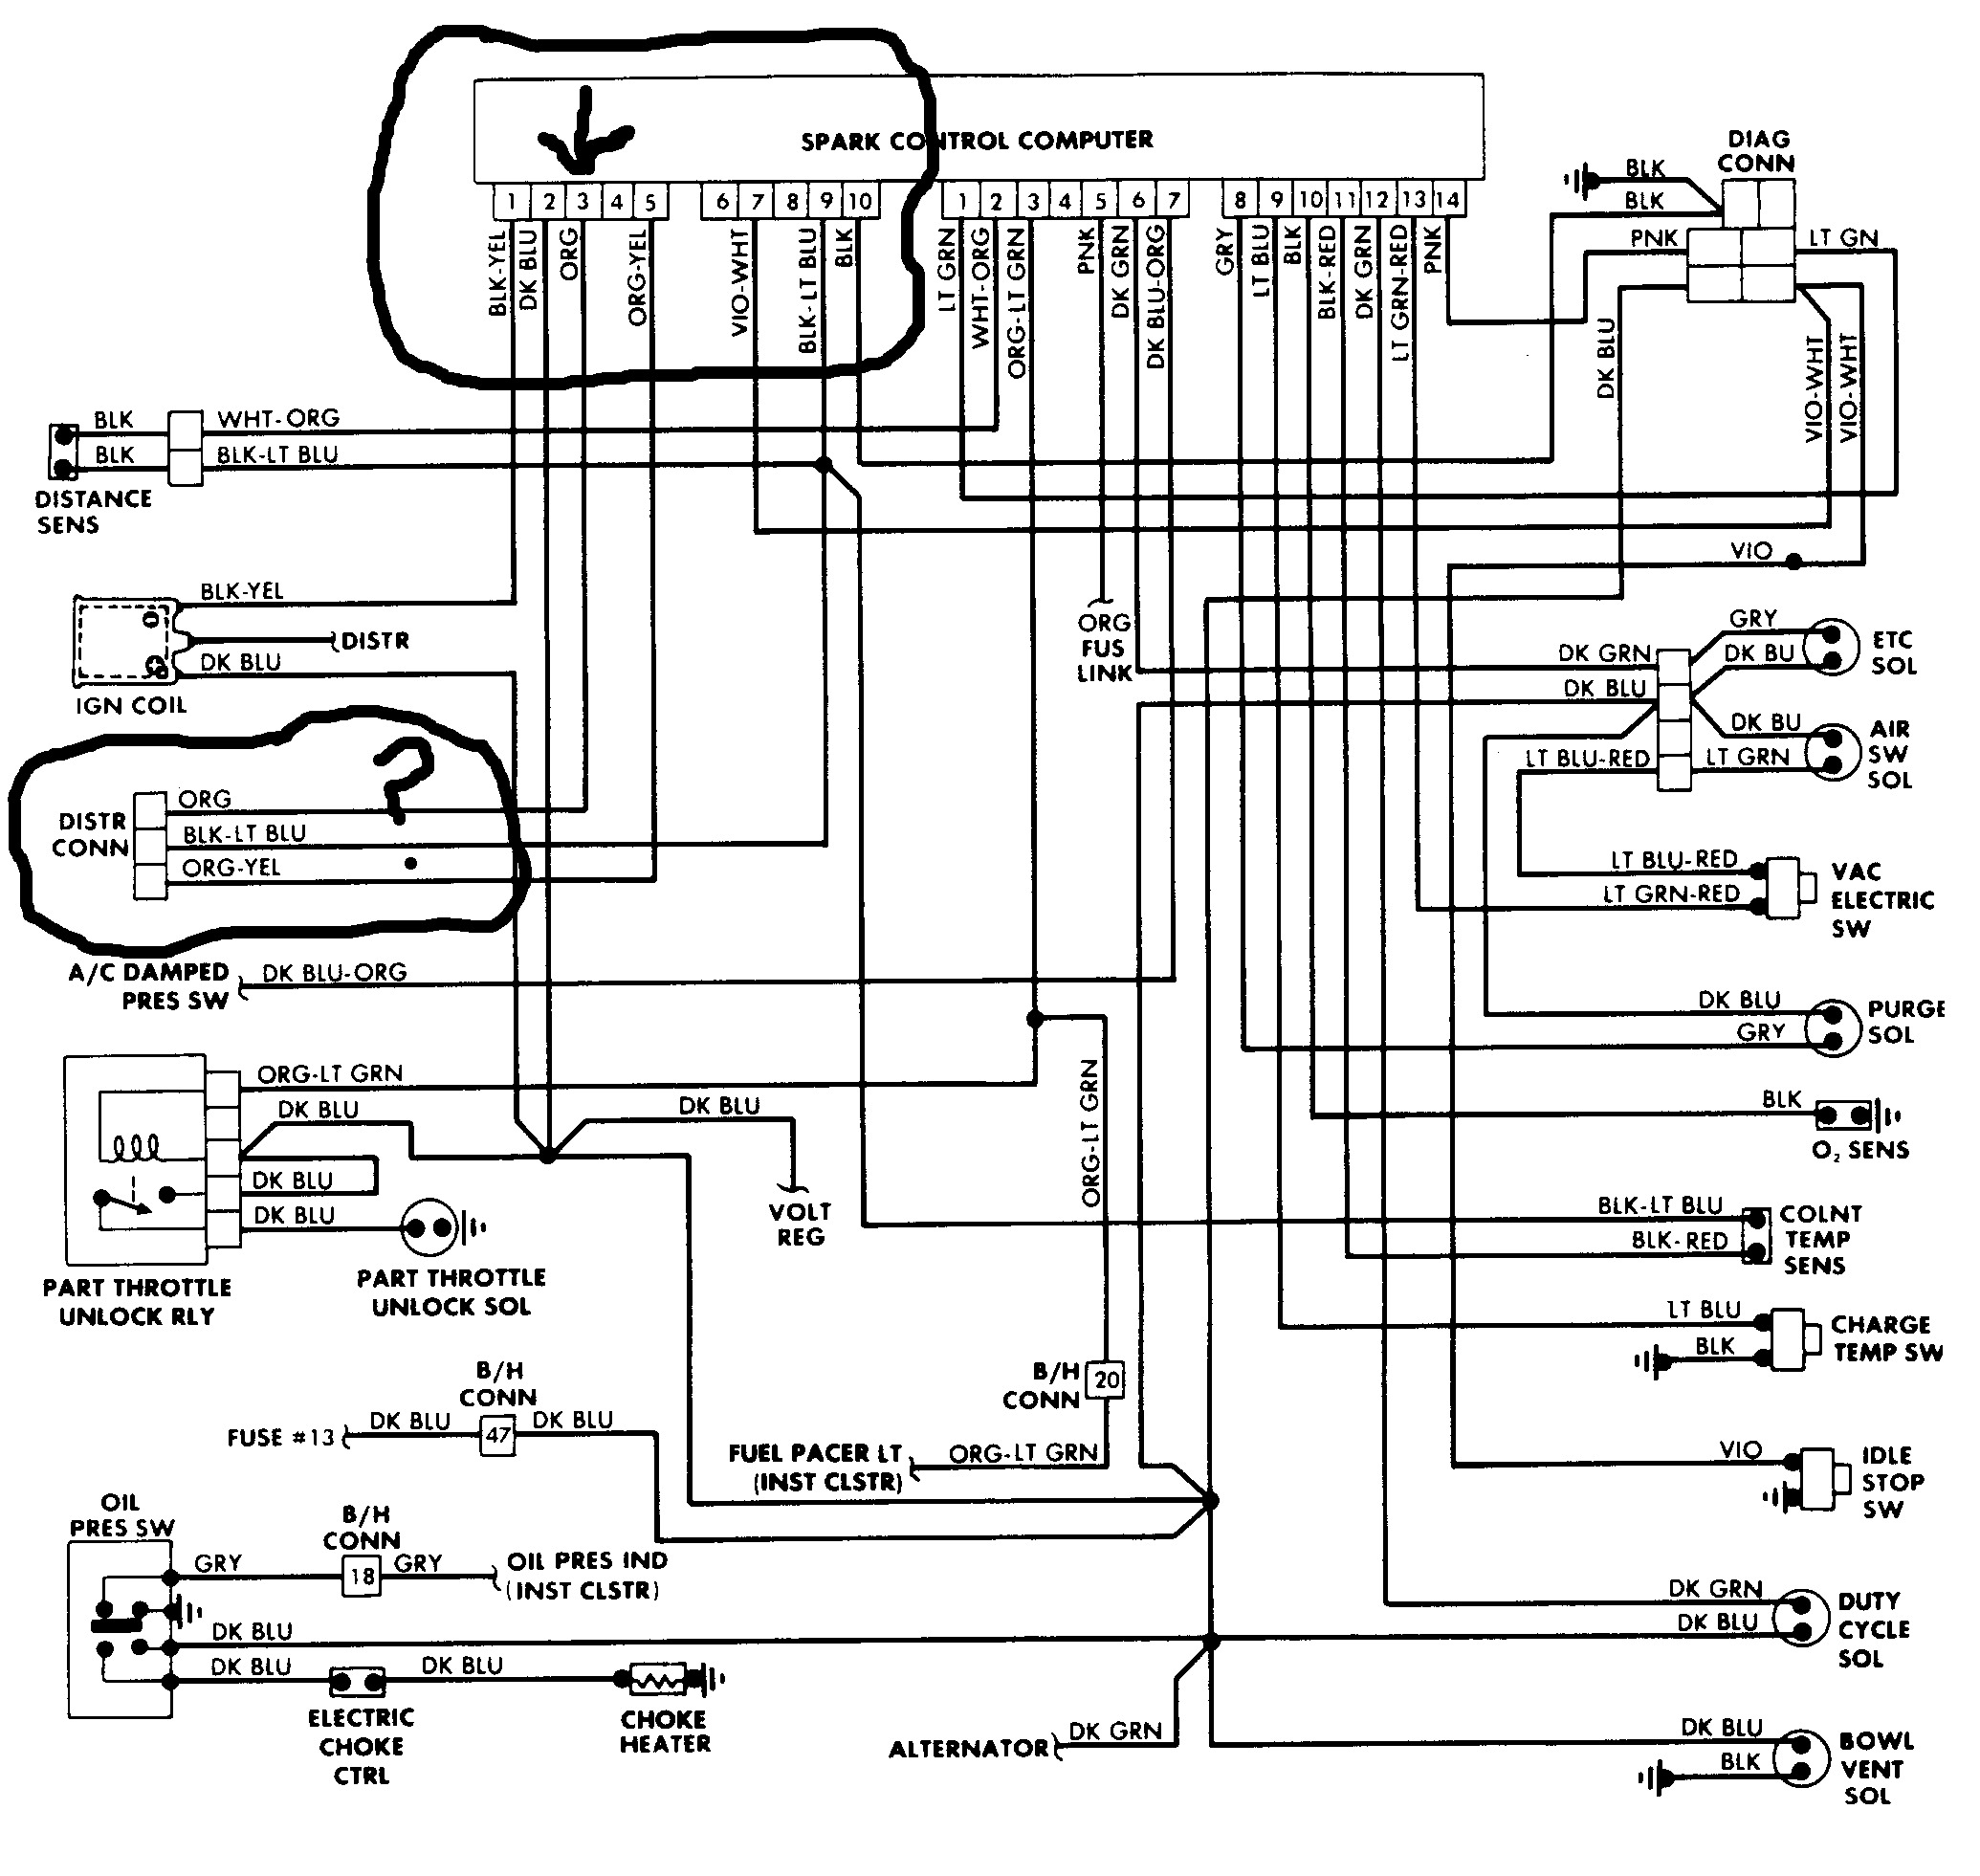 Diagram Dodge Dakota Engine Diagram Full Version Hd